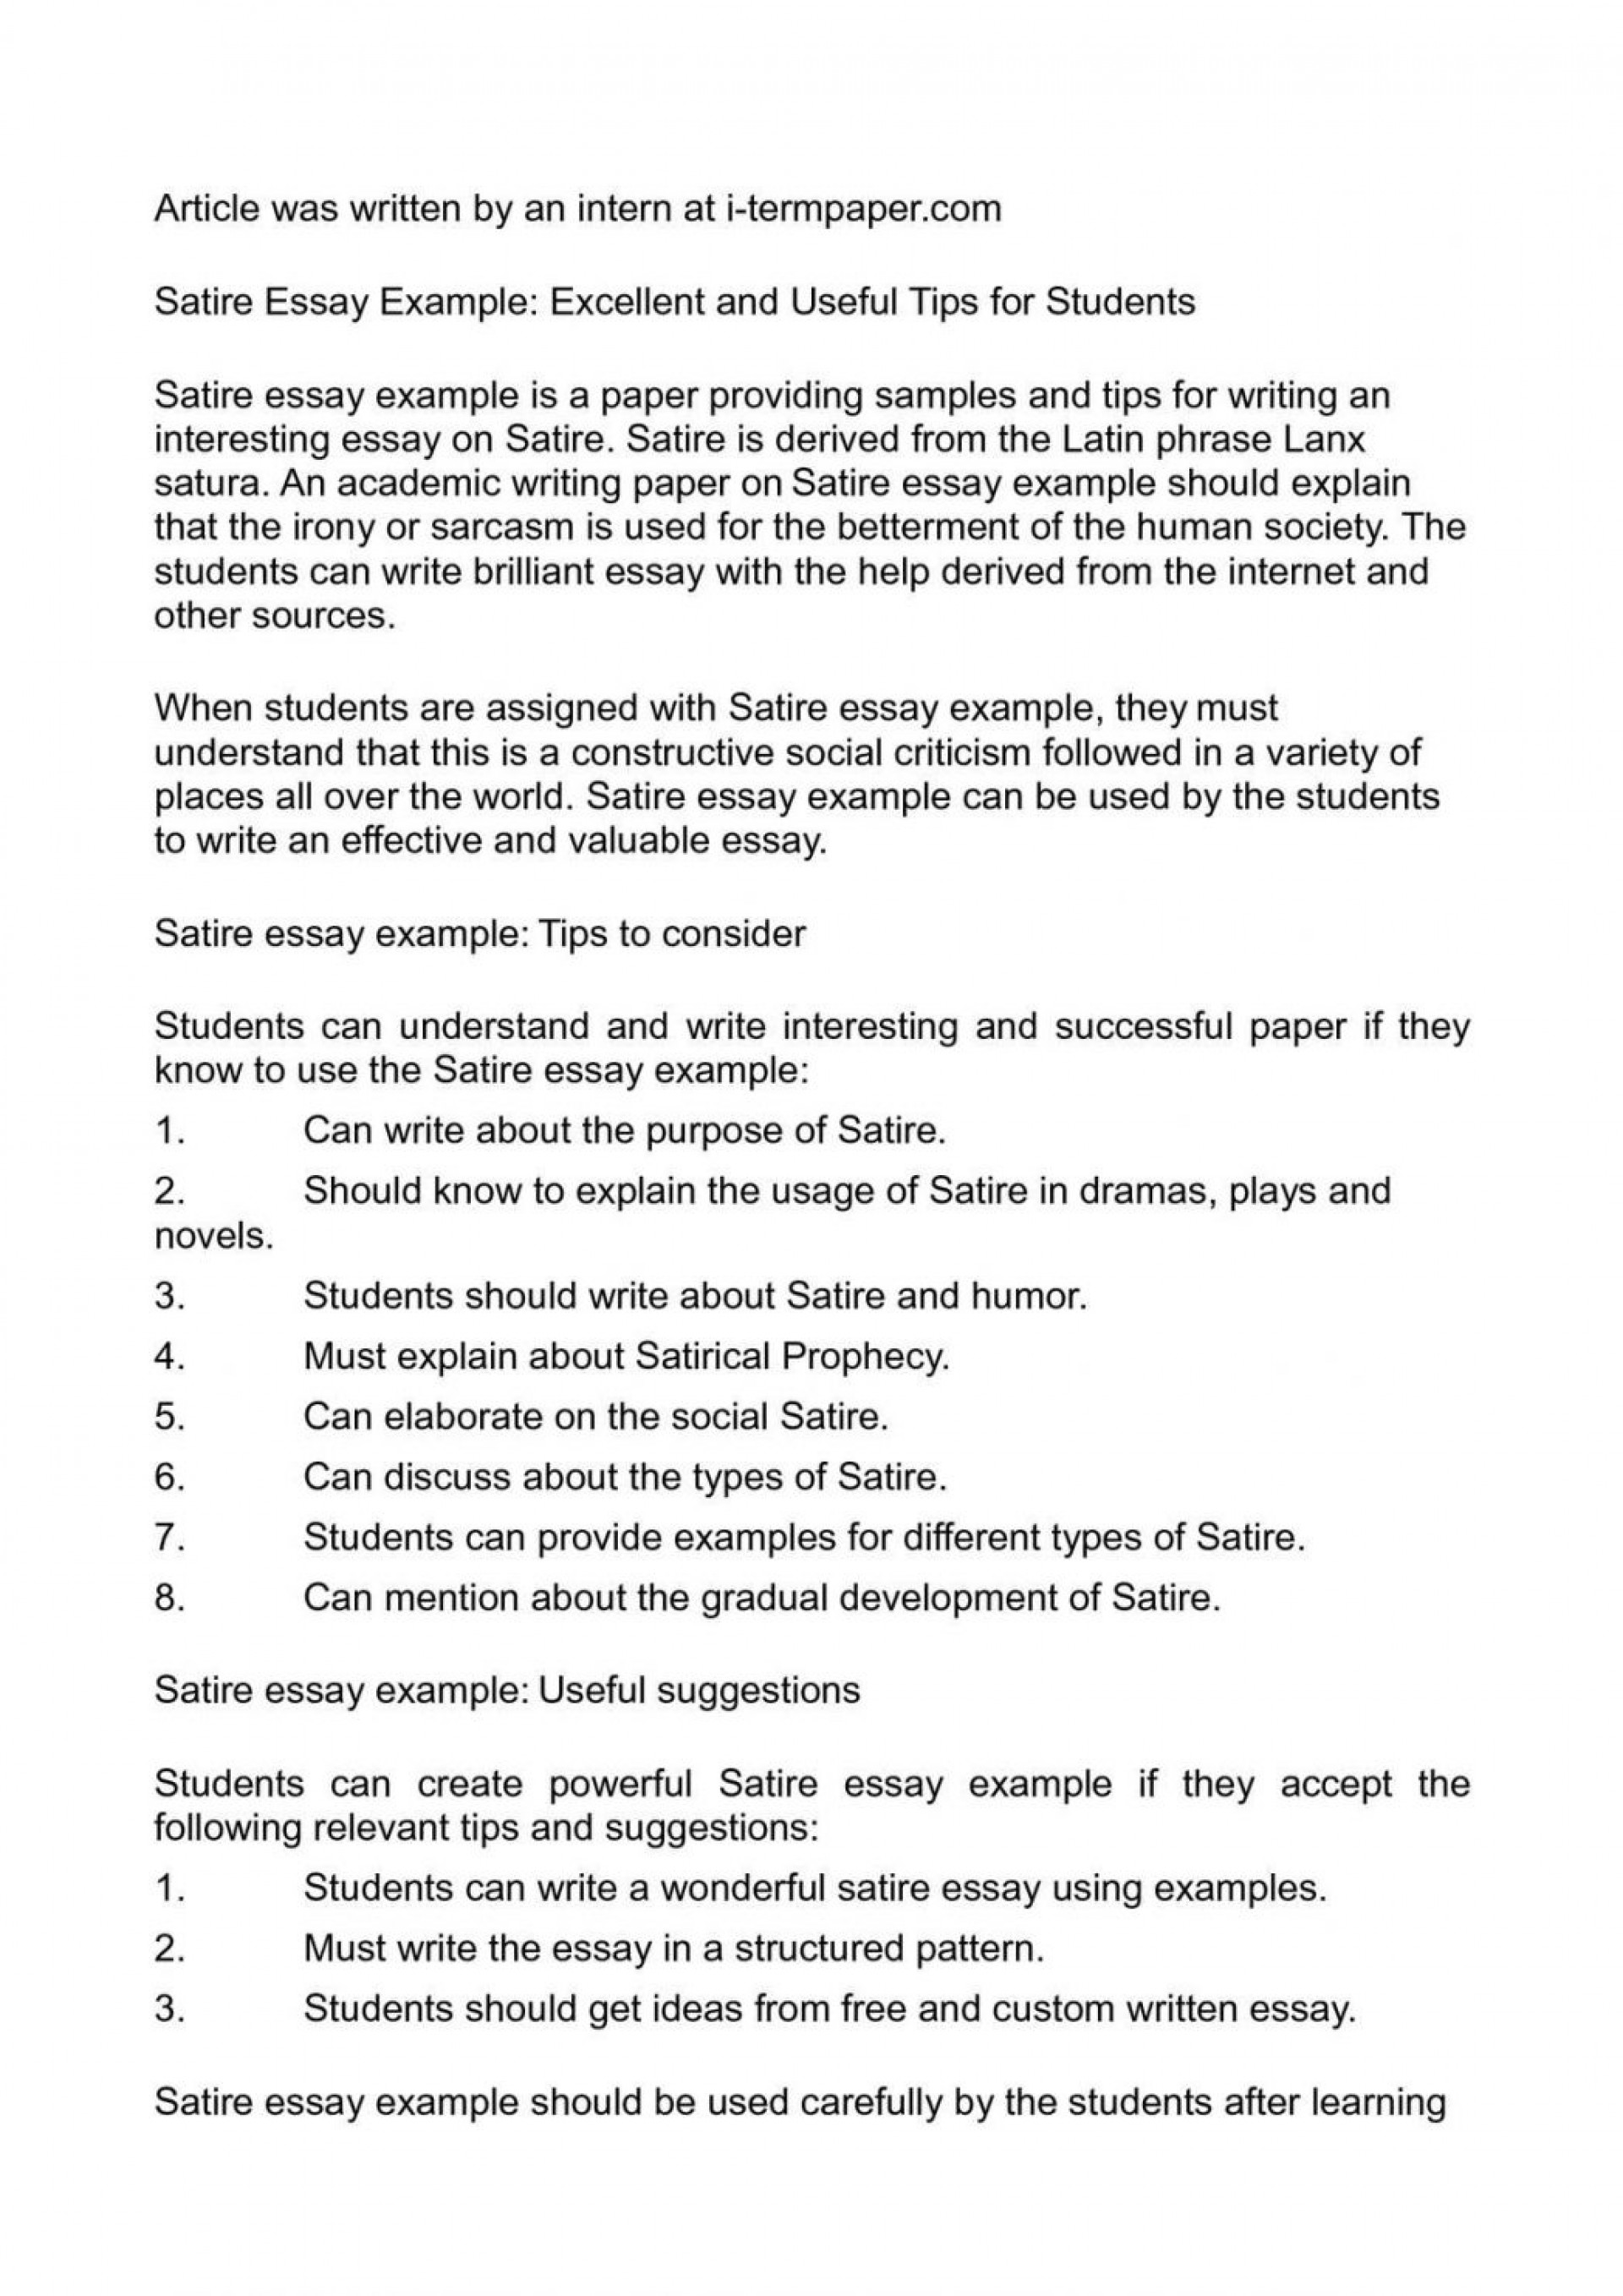 001 Satire Essays Human Evolution Of Satirical Essa Character 1048x1483 Excellent Essay Examples On Abortion Gun Control Obesity 1920